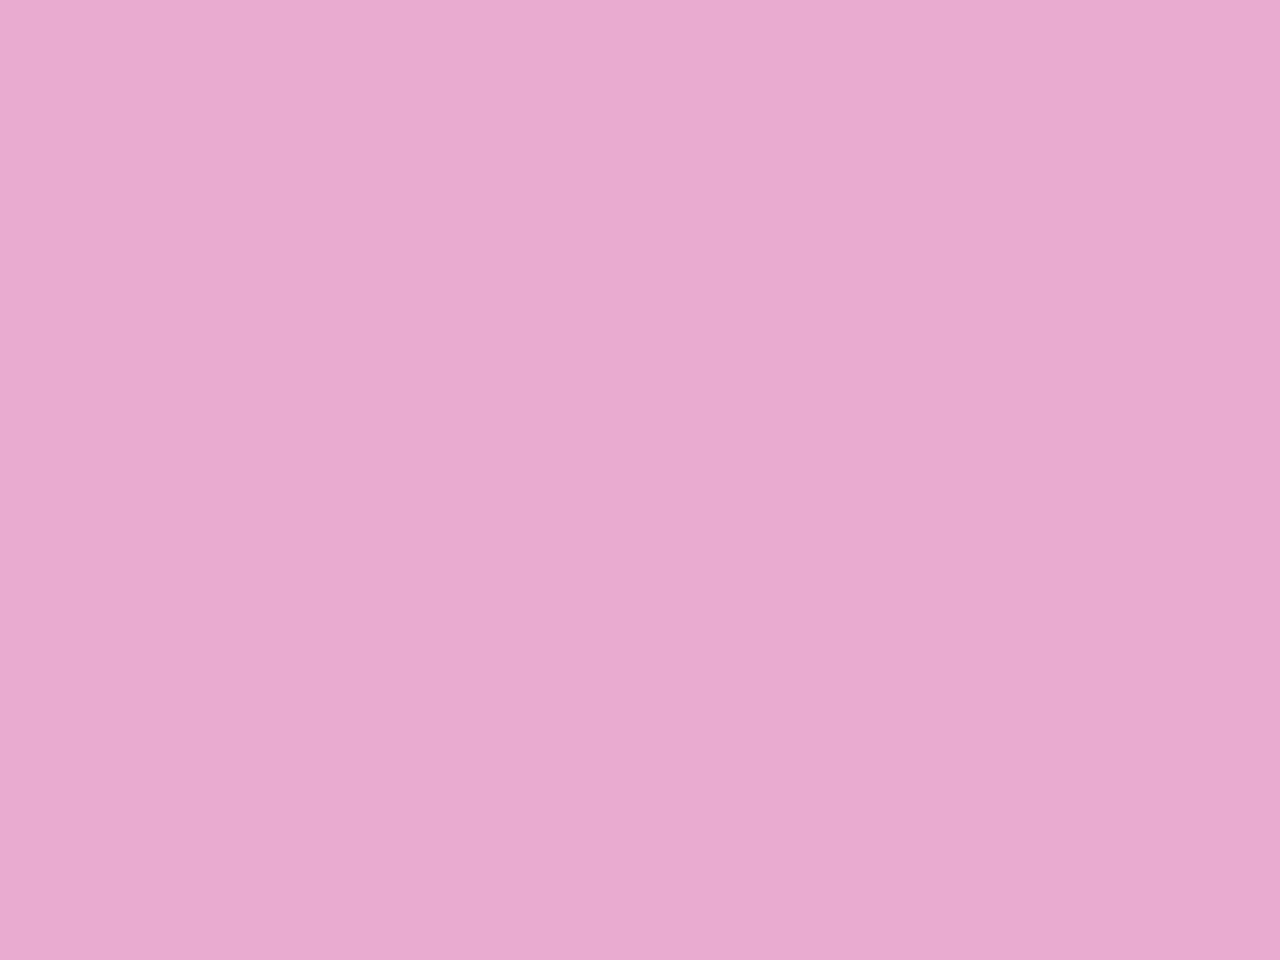 1280x960 Pink Pearl Solid Color Background